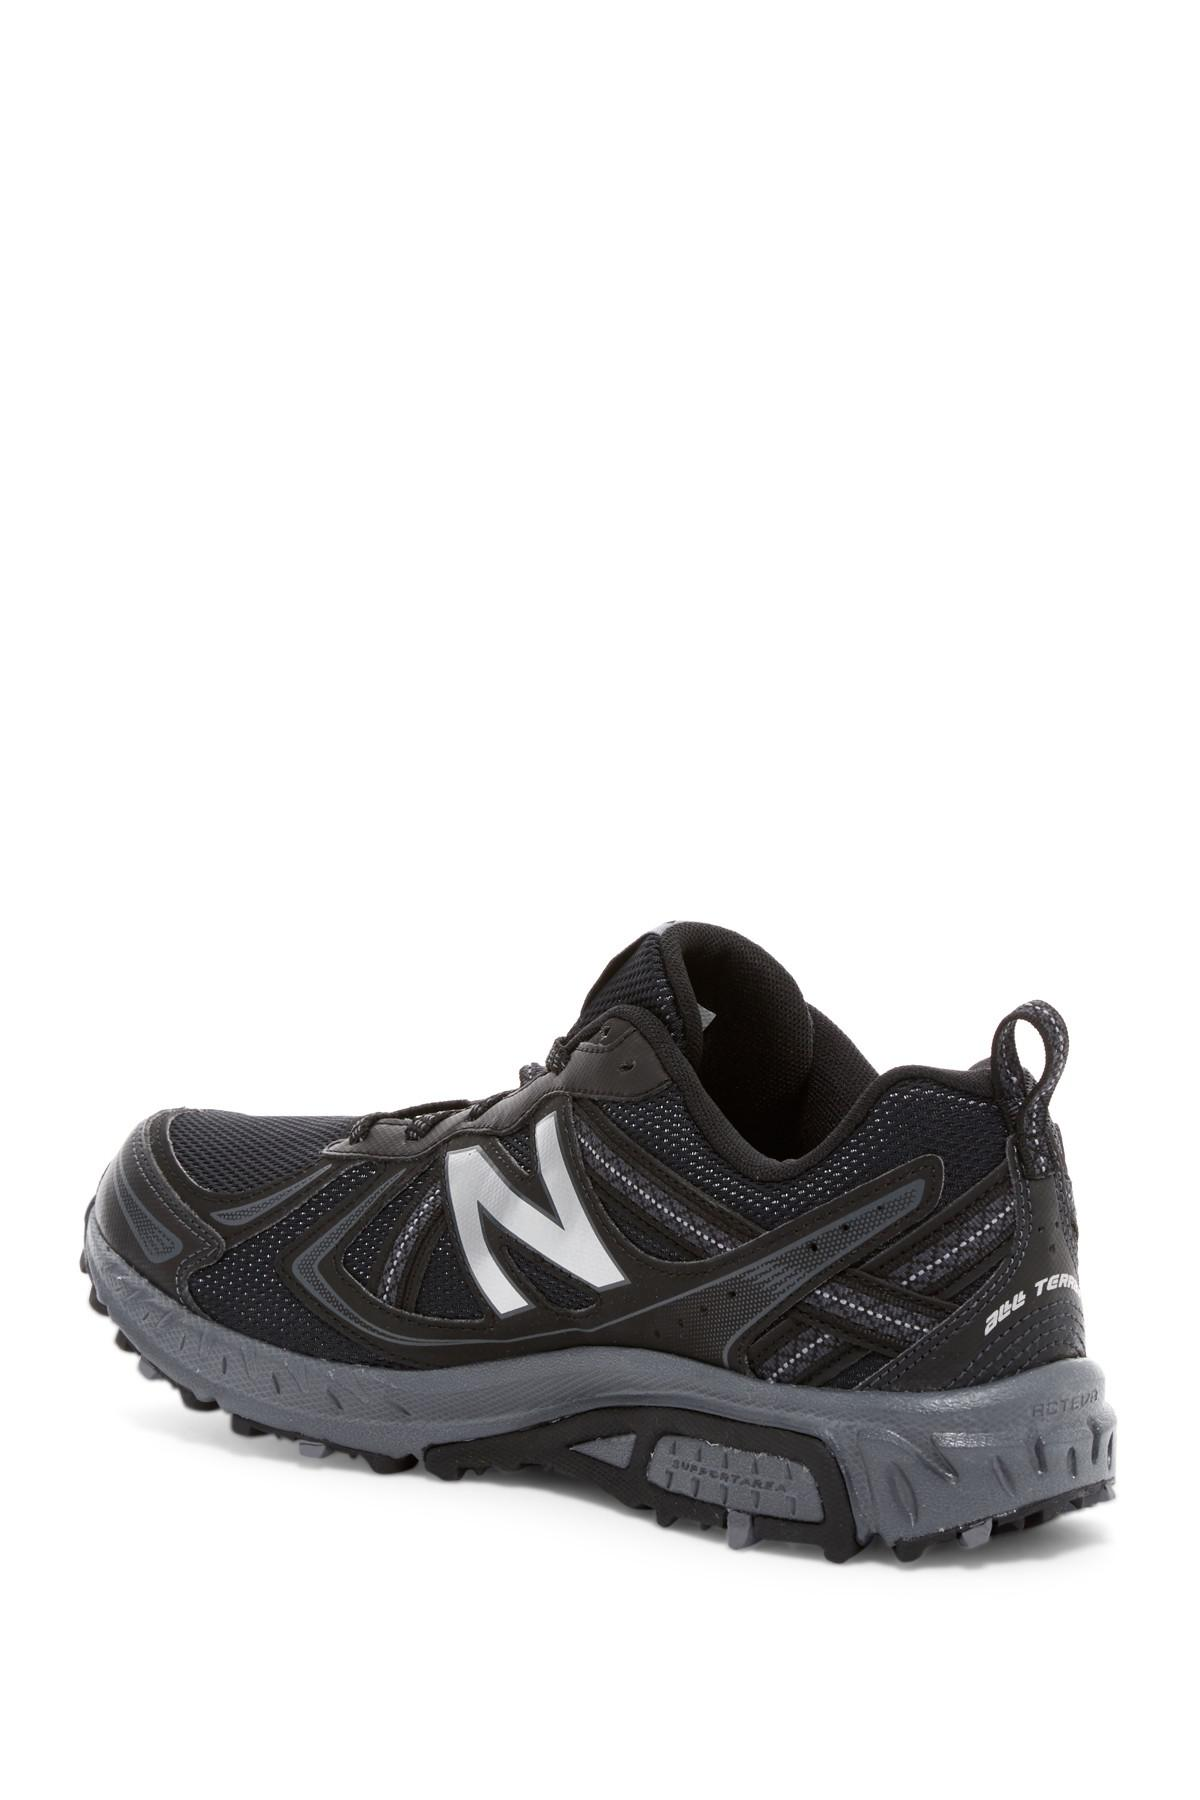 new product f1cf4 86eb9 Men's Black 410v5 Trail Running Shoe - Extra Wide Width Available